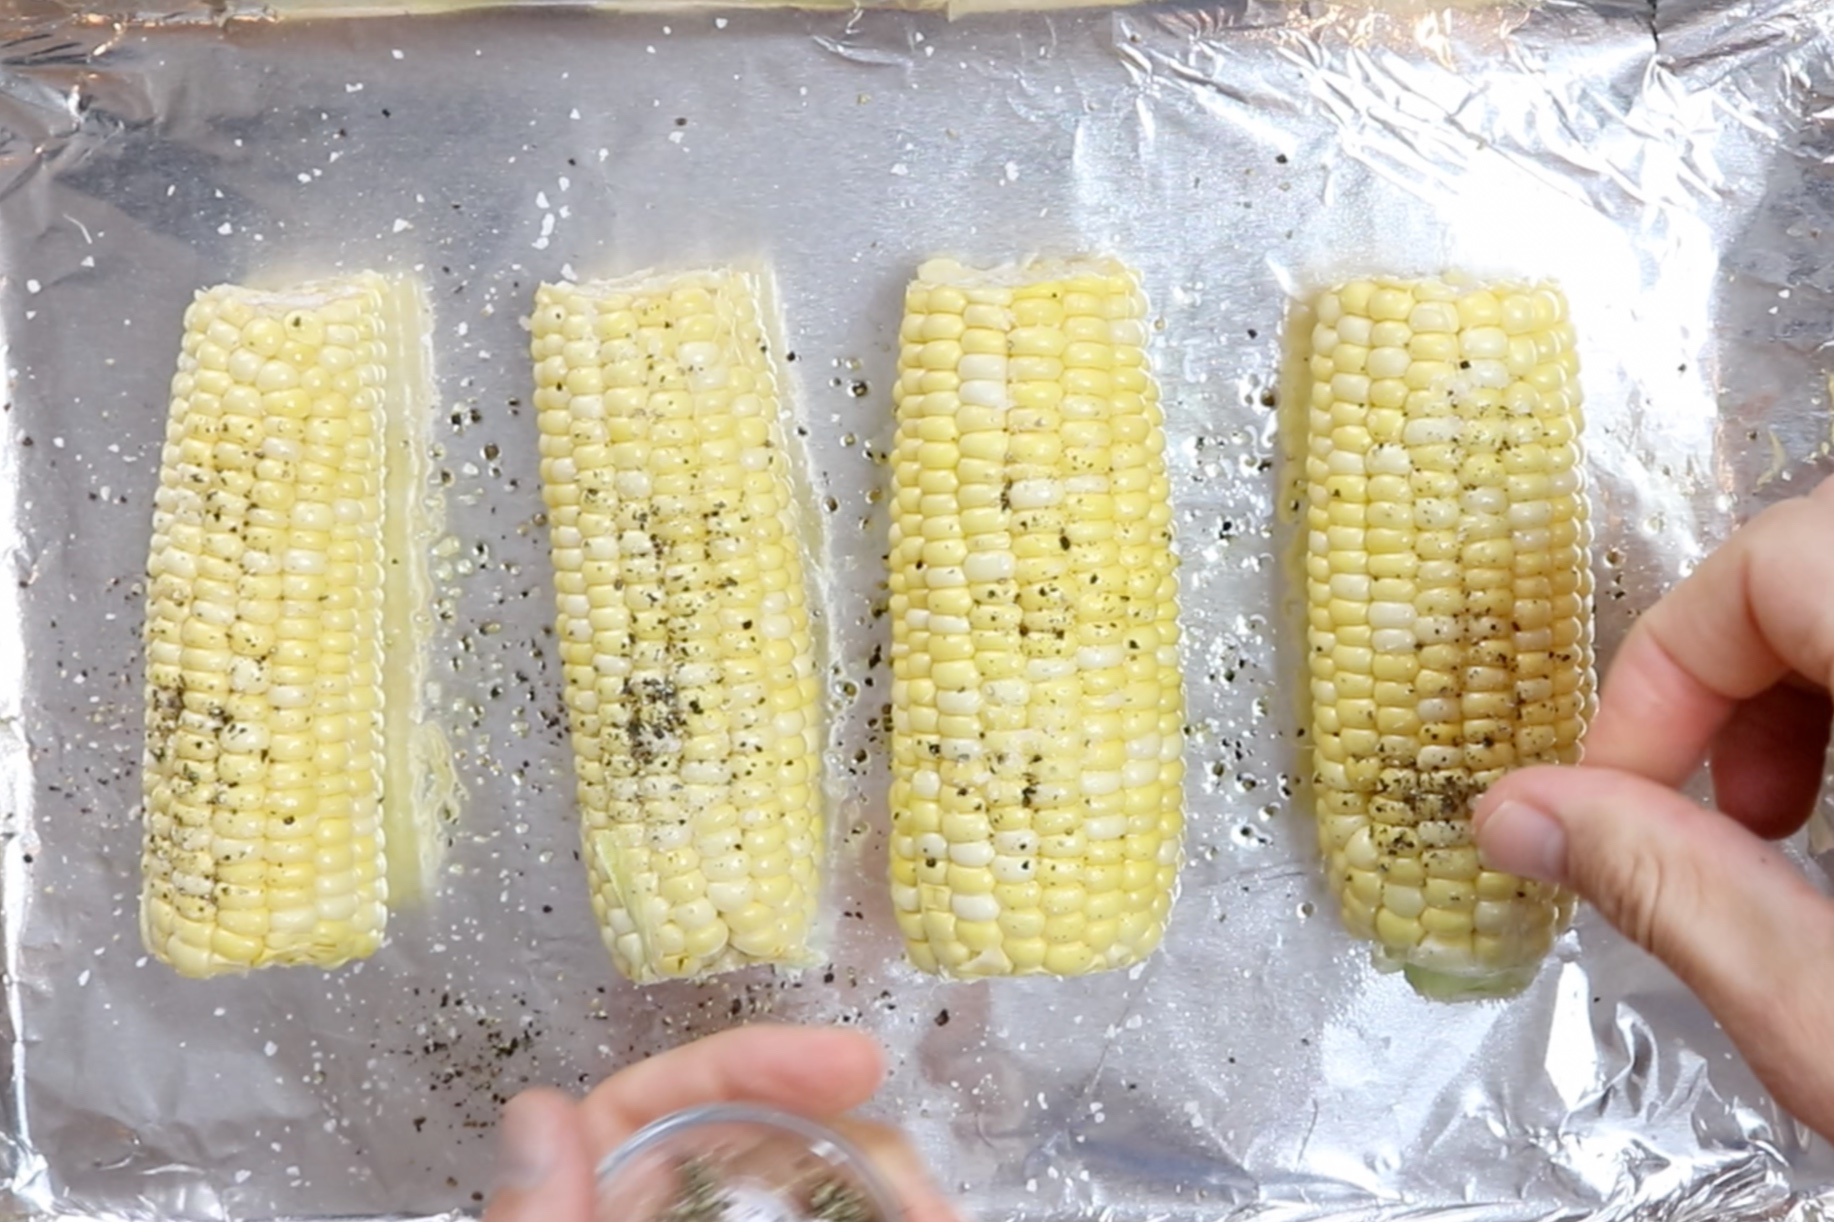 1. Heat the oven to 400°F. Prepare baking sheet with aluminum foil. Brush corn with olive oil and season with salt and pepper. -